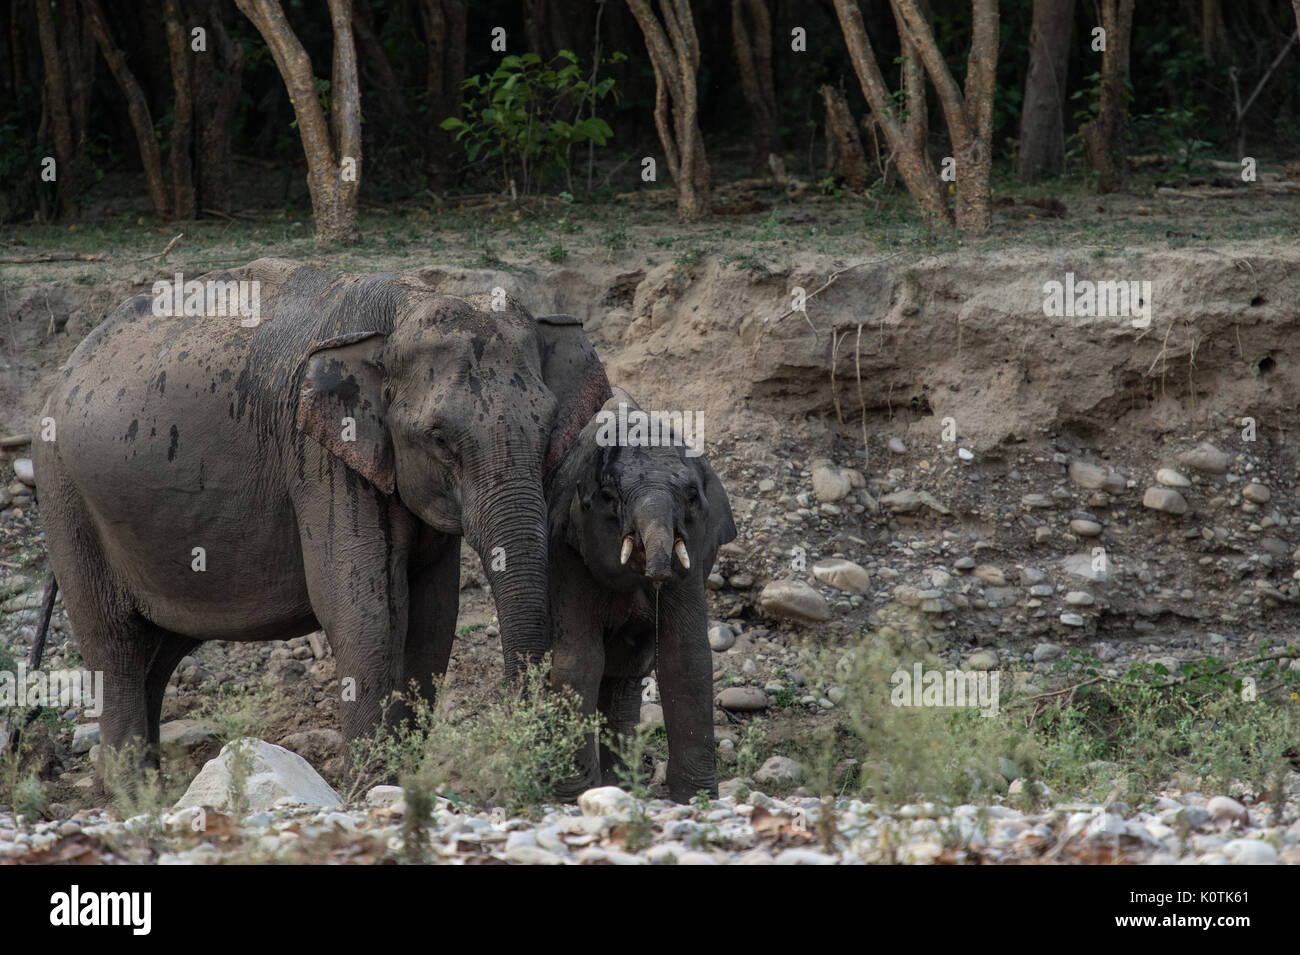 L'éléphant indien, Elephas maximus indicus, Elephantidae,Parc national de Rajaji, Inde Photo Stock